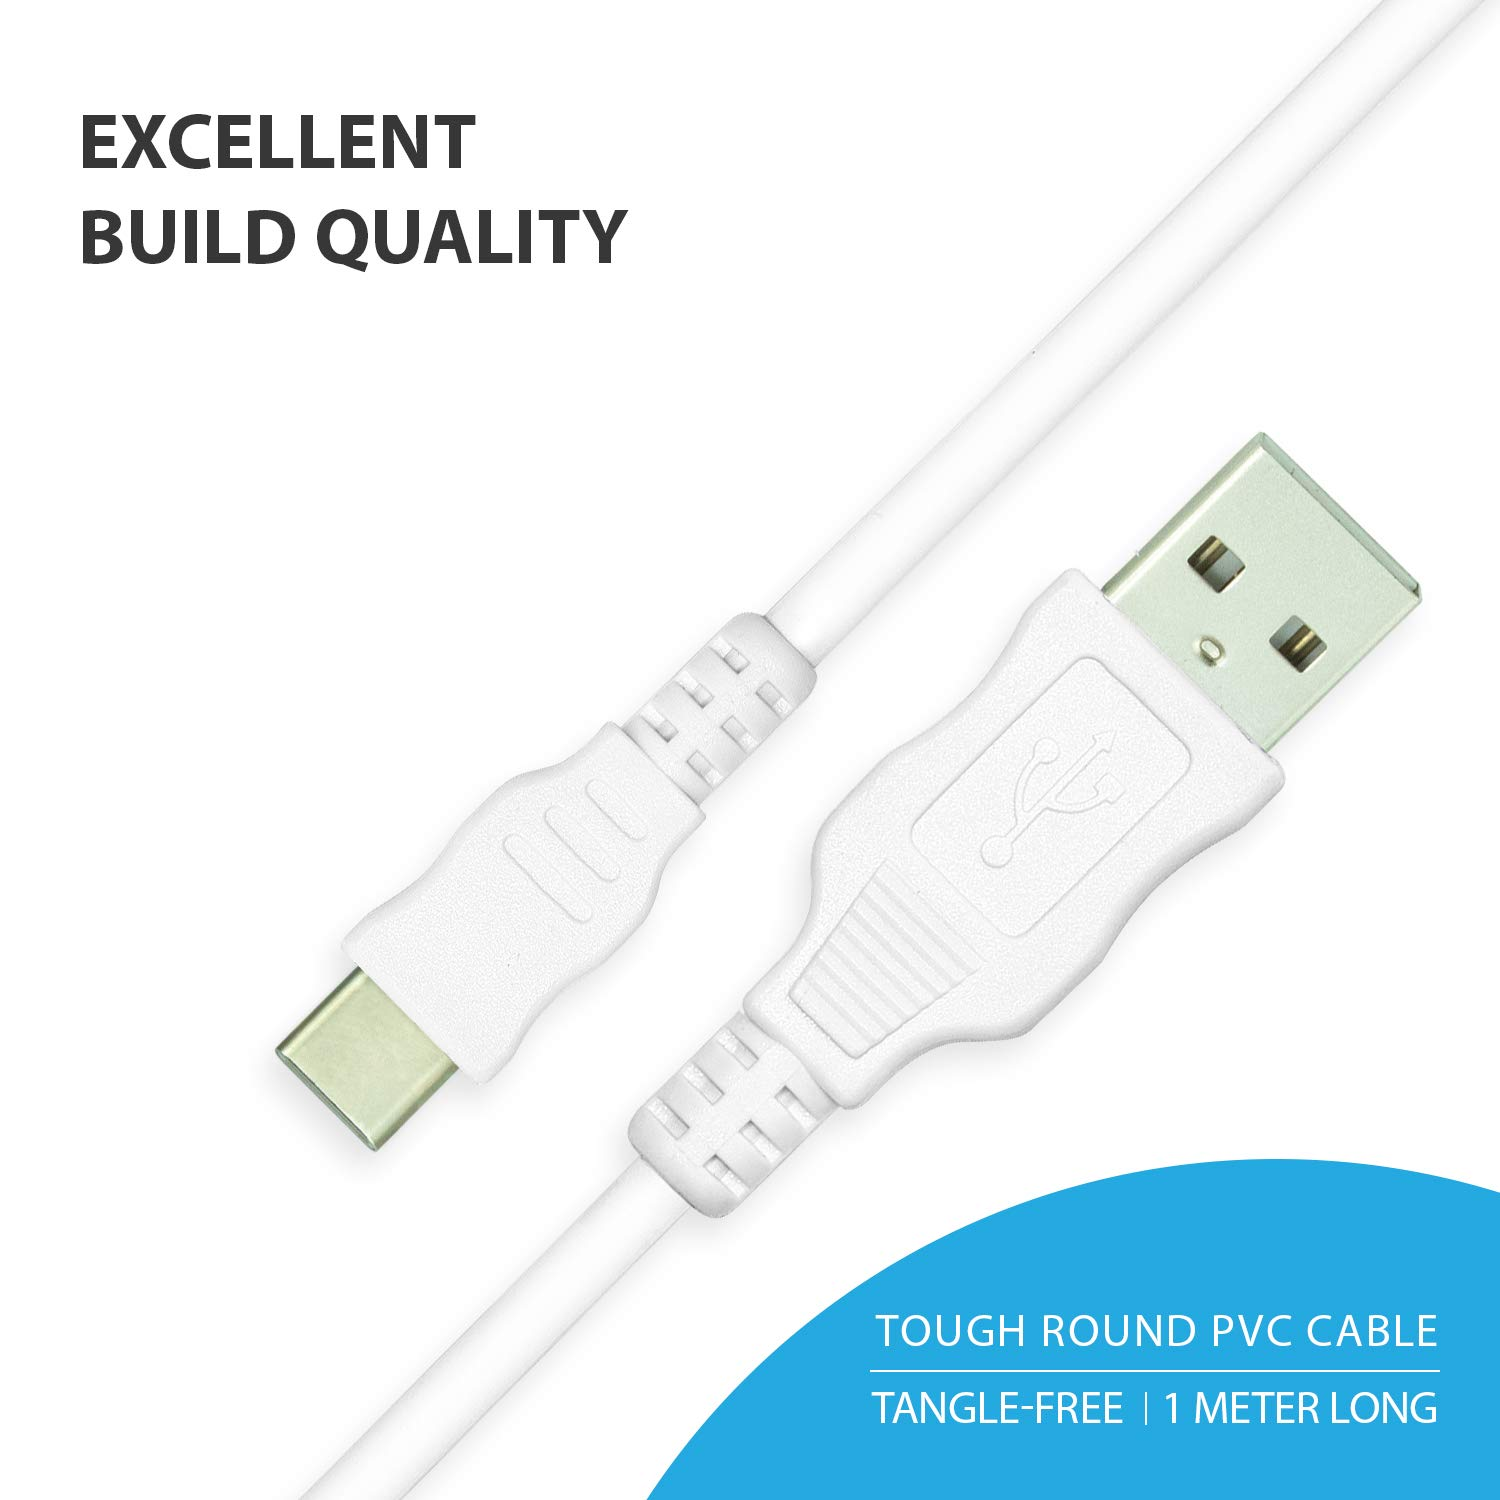 Blaupunkt Highly Durable Type C to USB 2.0 Round Cable with High Speed Charging, Quick Data Sync and PVC Connectors for All USB Powered Devices (White)